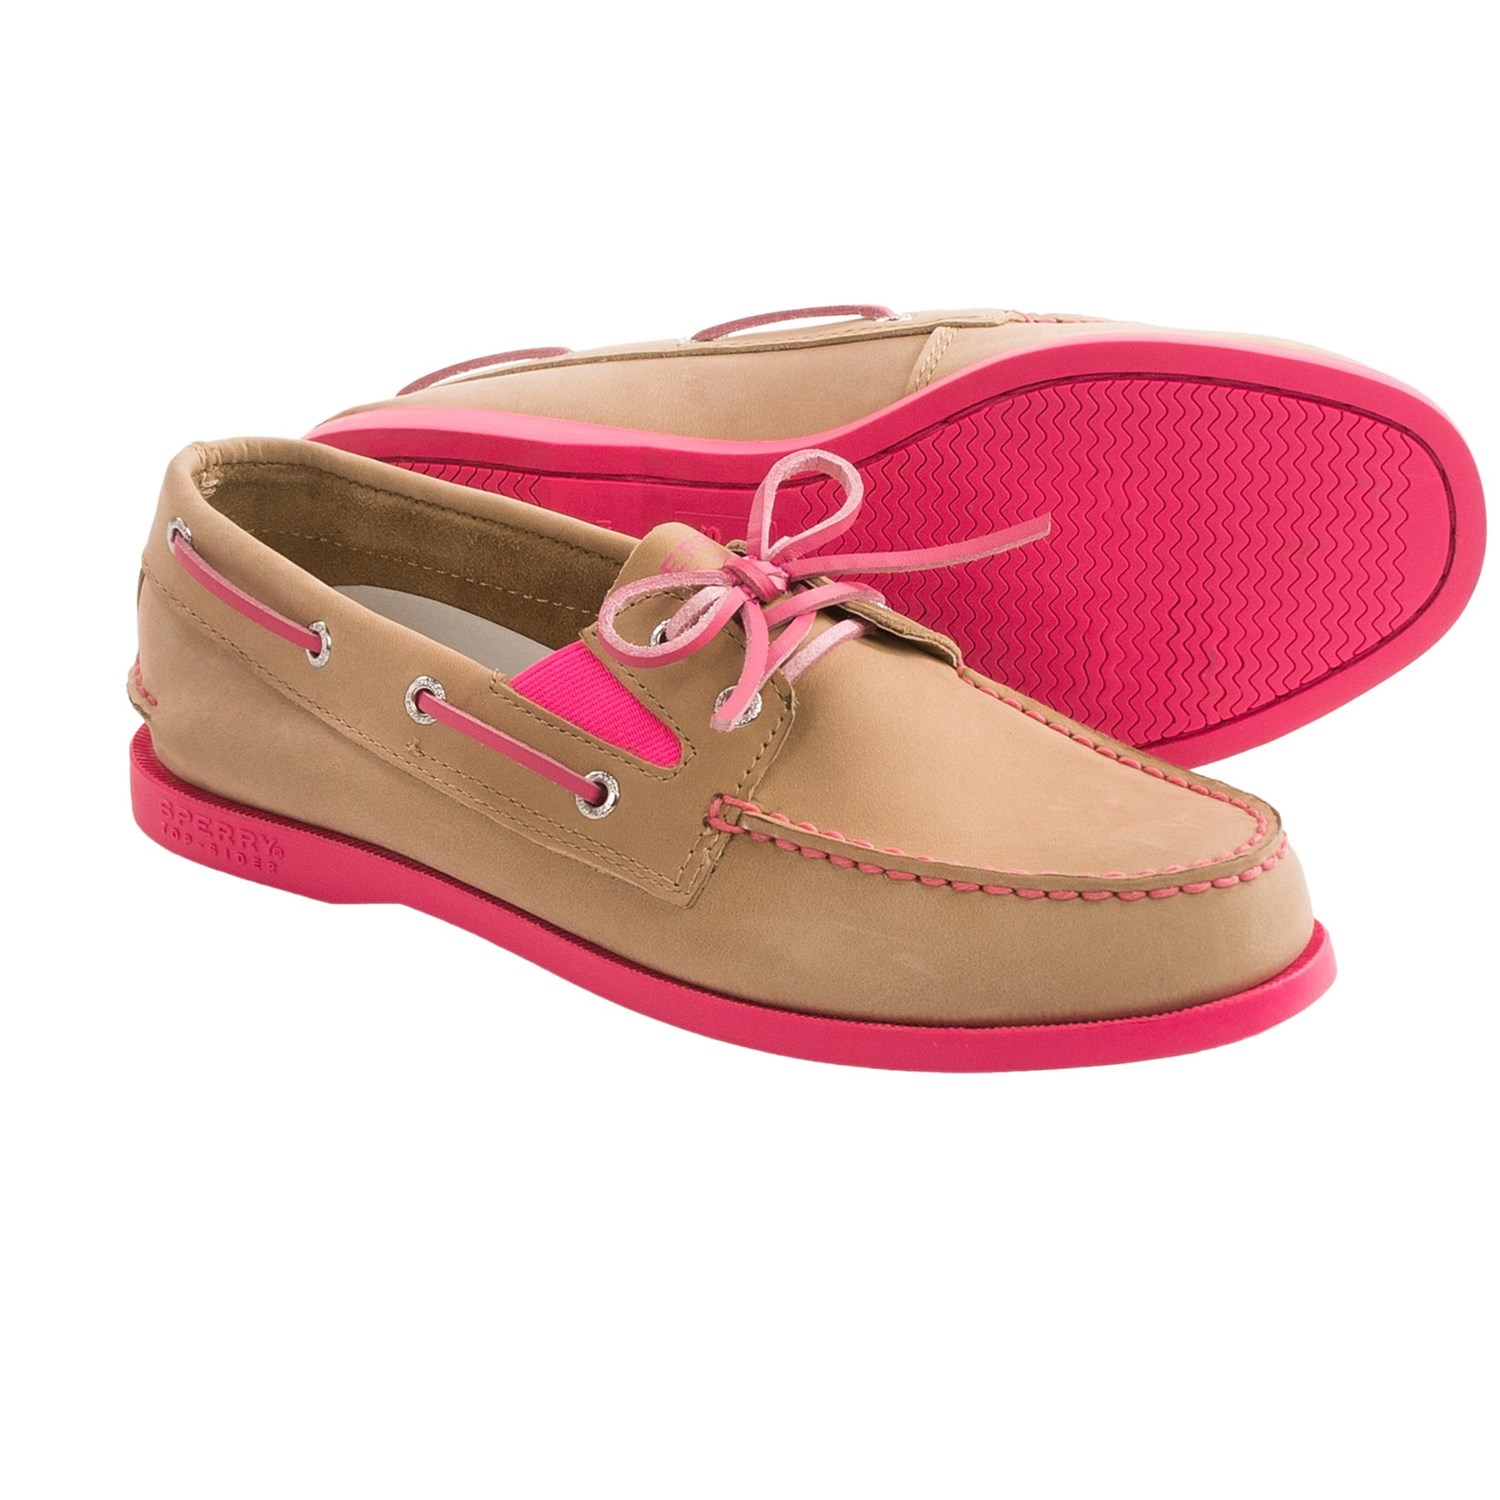 sperry a o shoes nubuck for and youth in linen multi